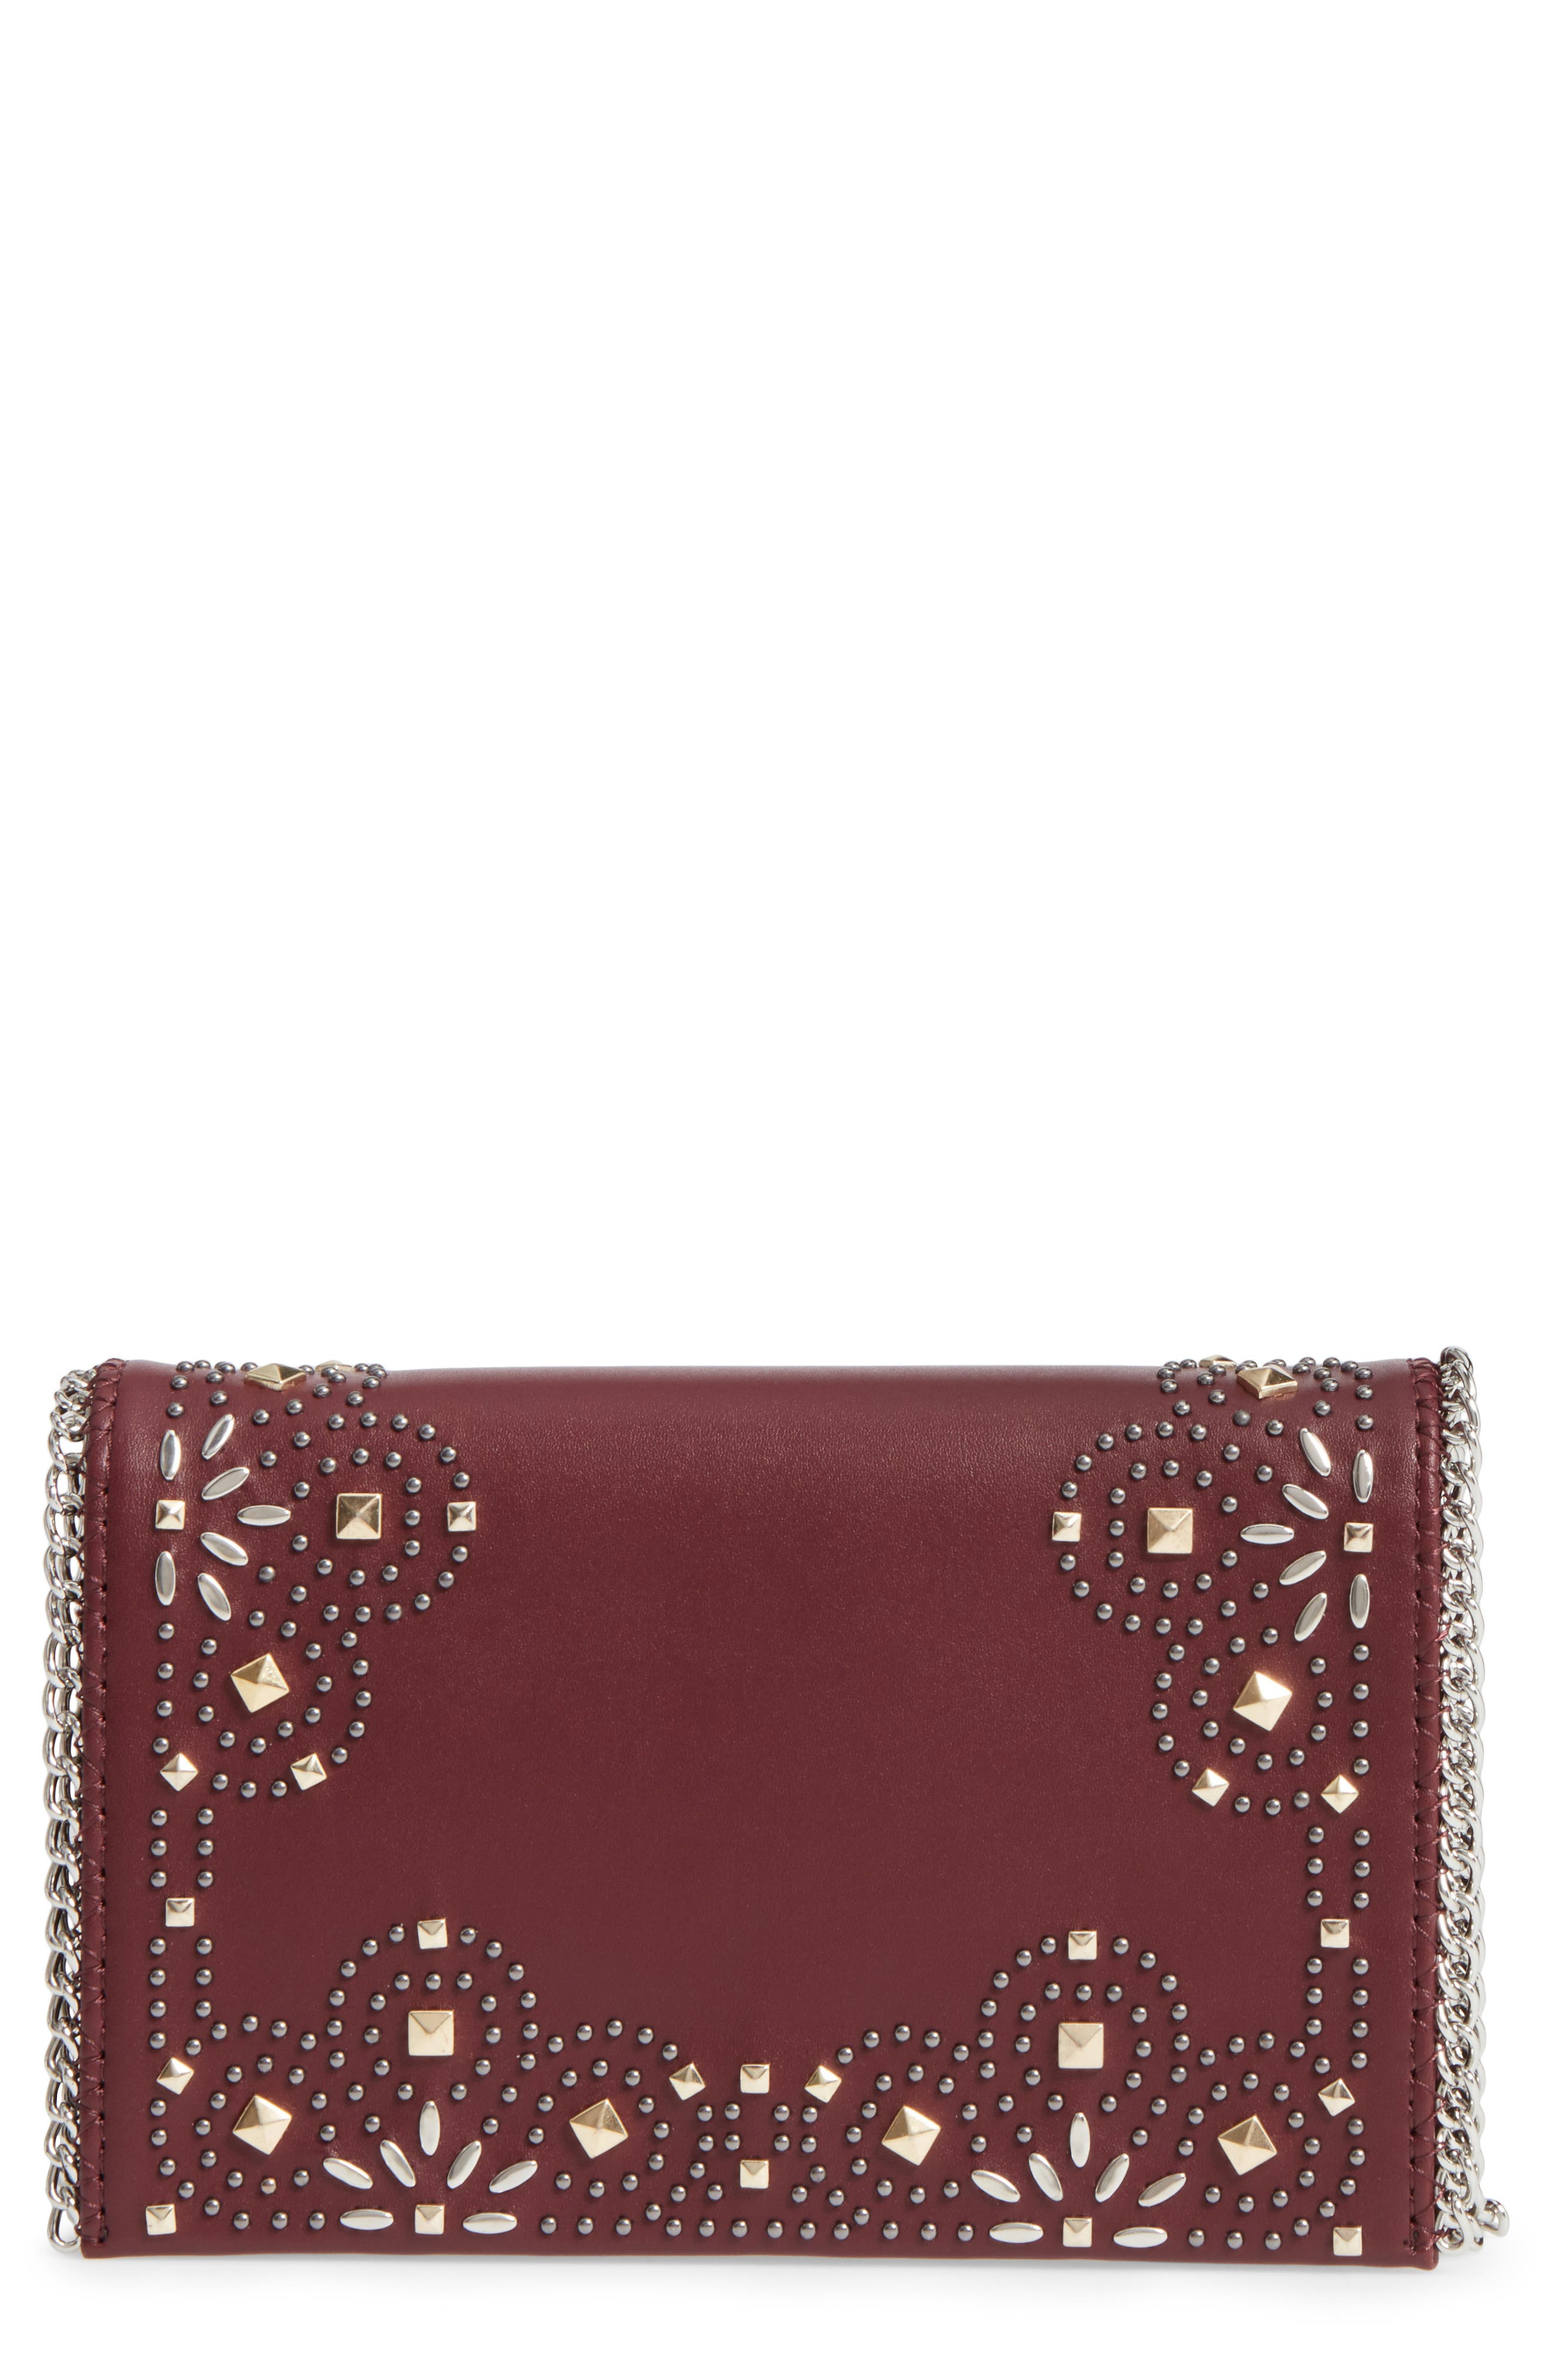 Alternate Image 1 Selected - Chelsea28 Fleur Studded Faux Leather Convertible Clutch